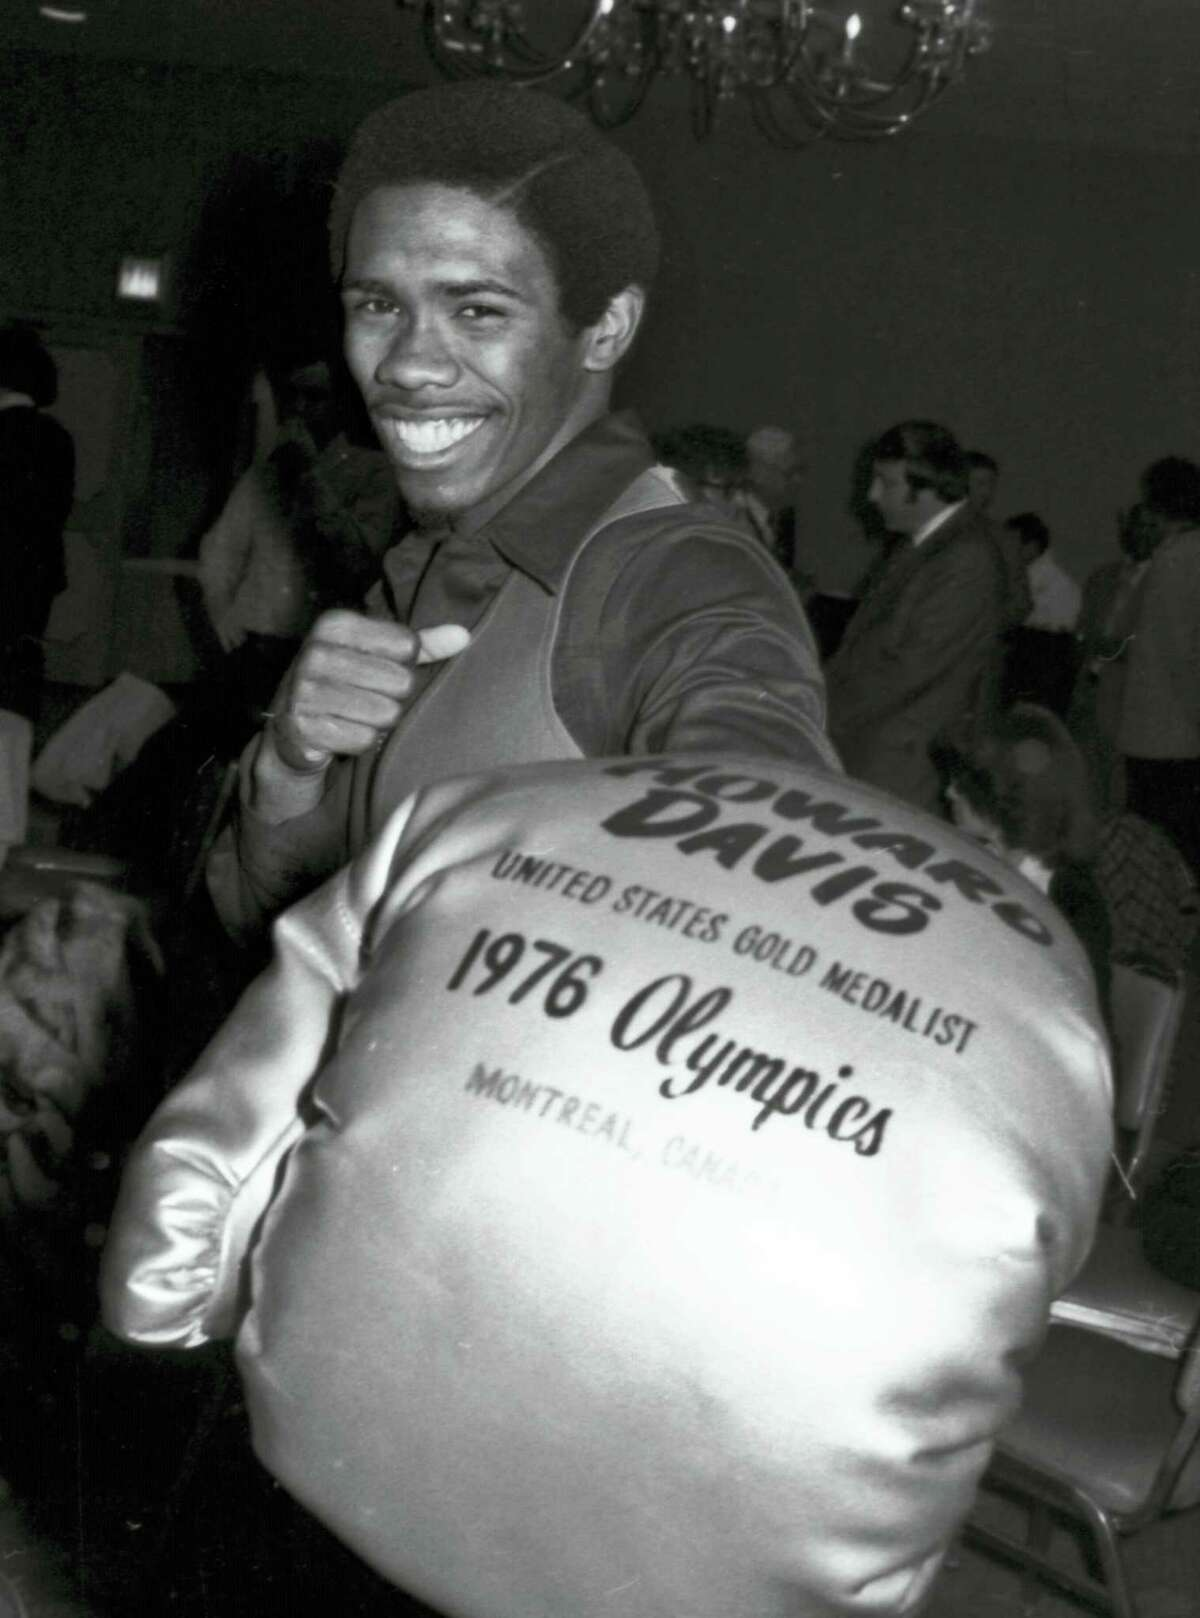 Howard Davis, the Olympic gold medal winner in the lightweight boxing division in 1976, died Wednesday in Florida. He was 59. In the 1976 Olympics, Davis was voted the outstanding boxer, out-polling such champions as Sugar Ray Leonard.